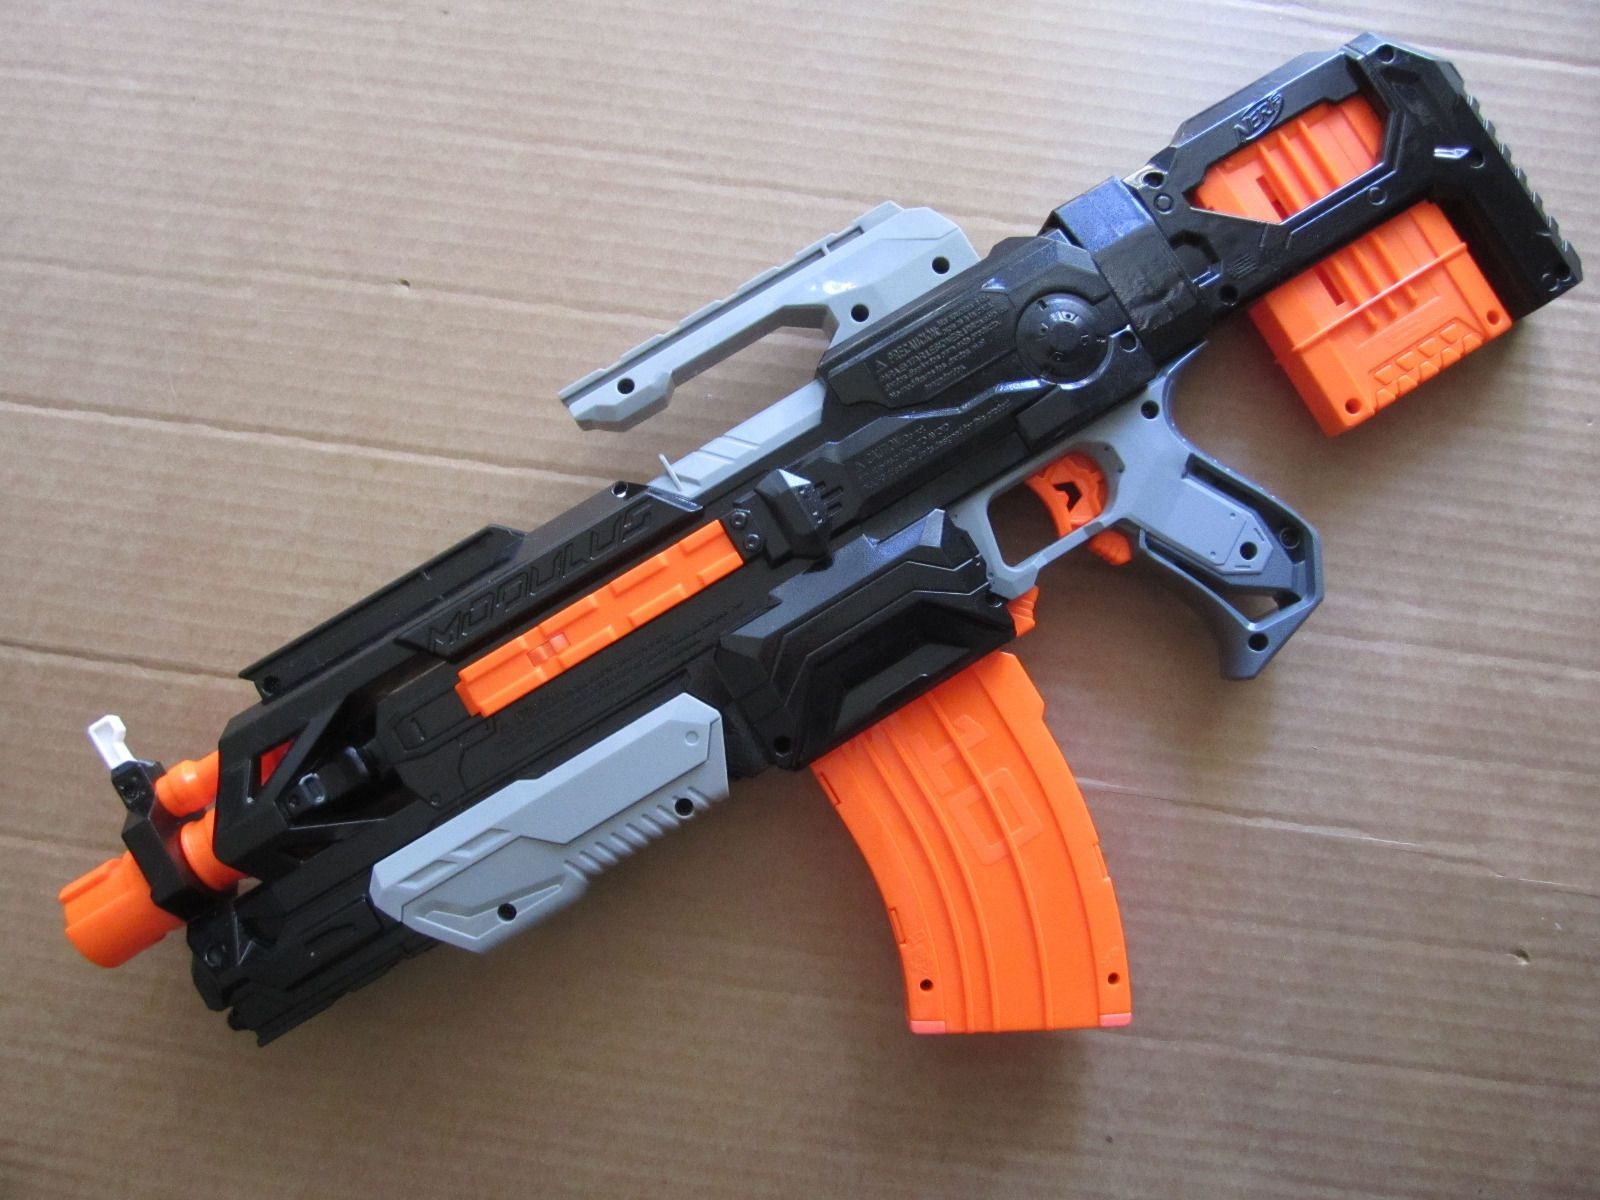 NERF MODULUS ECS-10 CORE (upgraded motors and more)